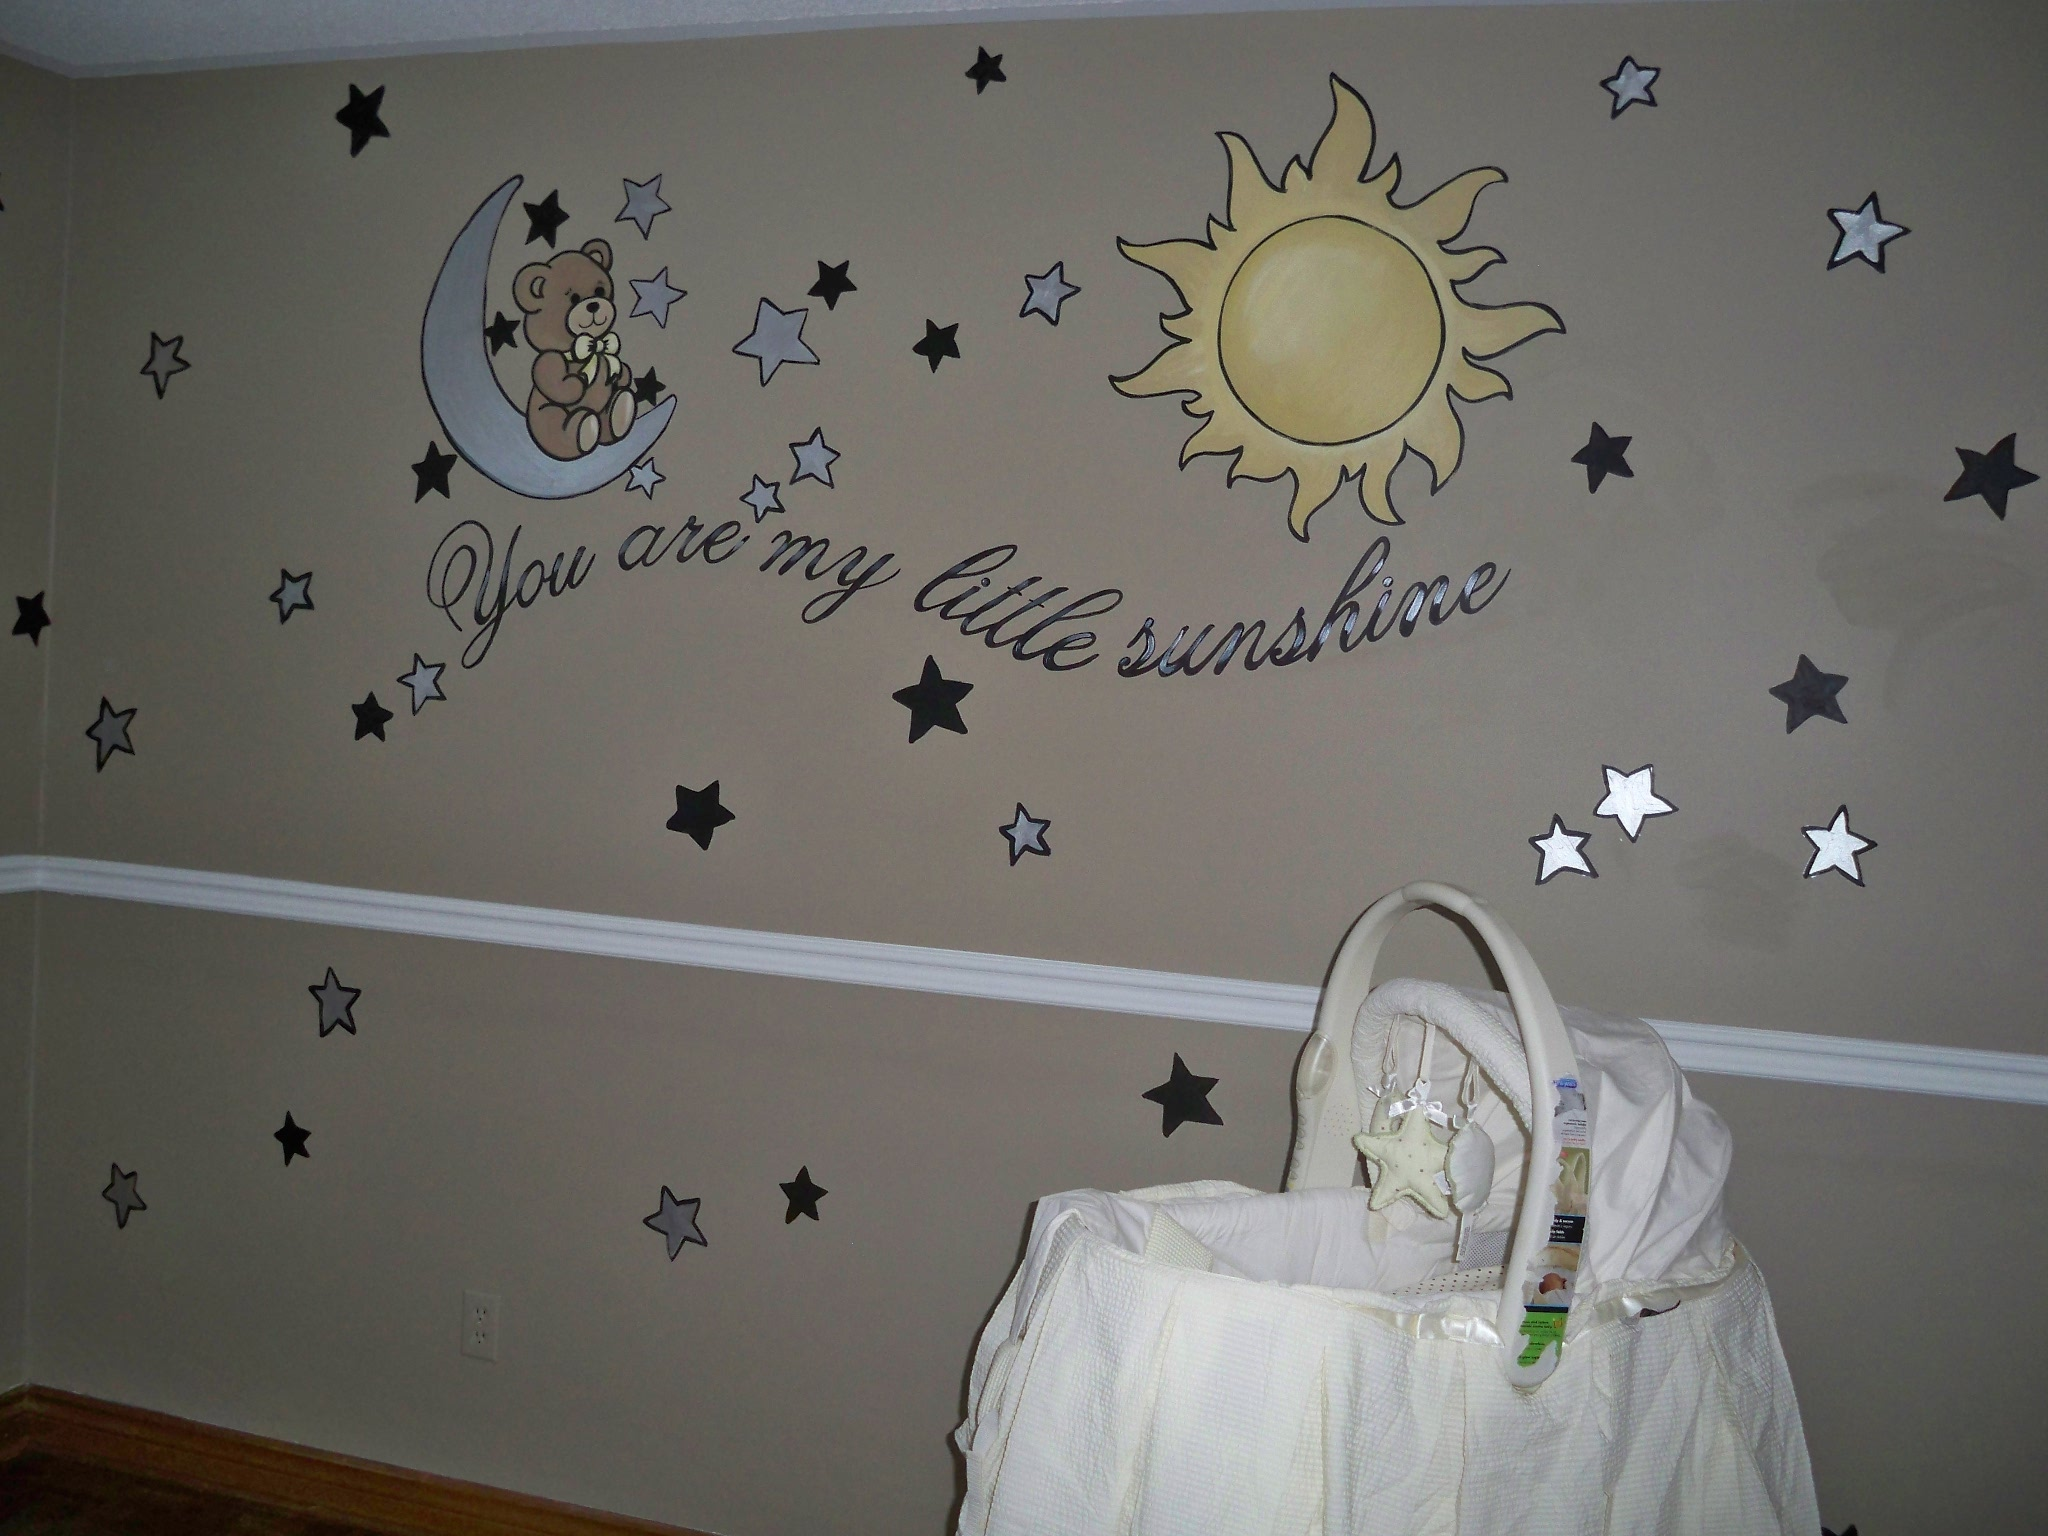 Mural By Marg You are my sunshine